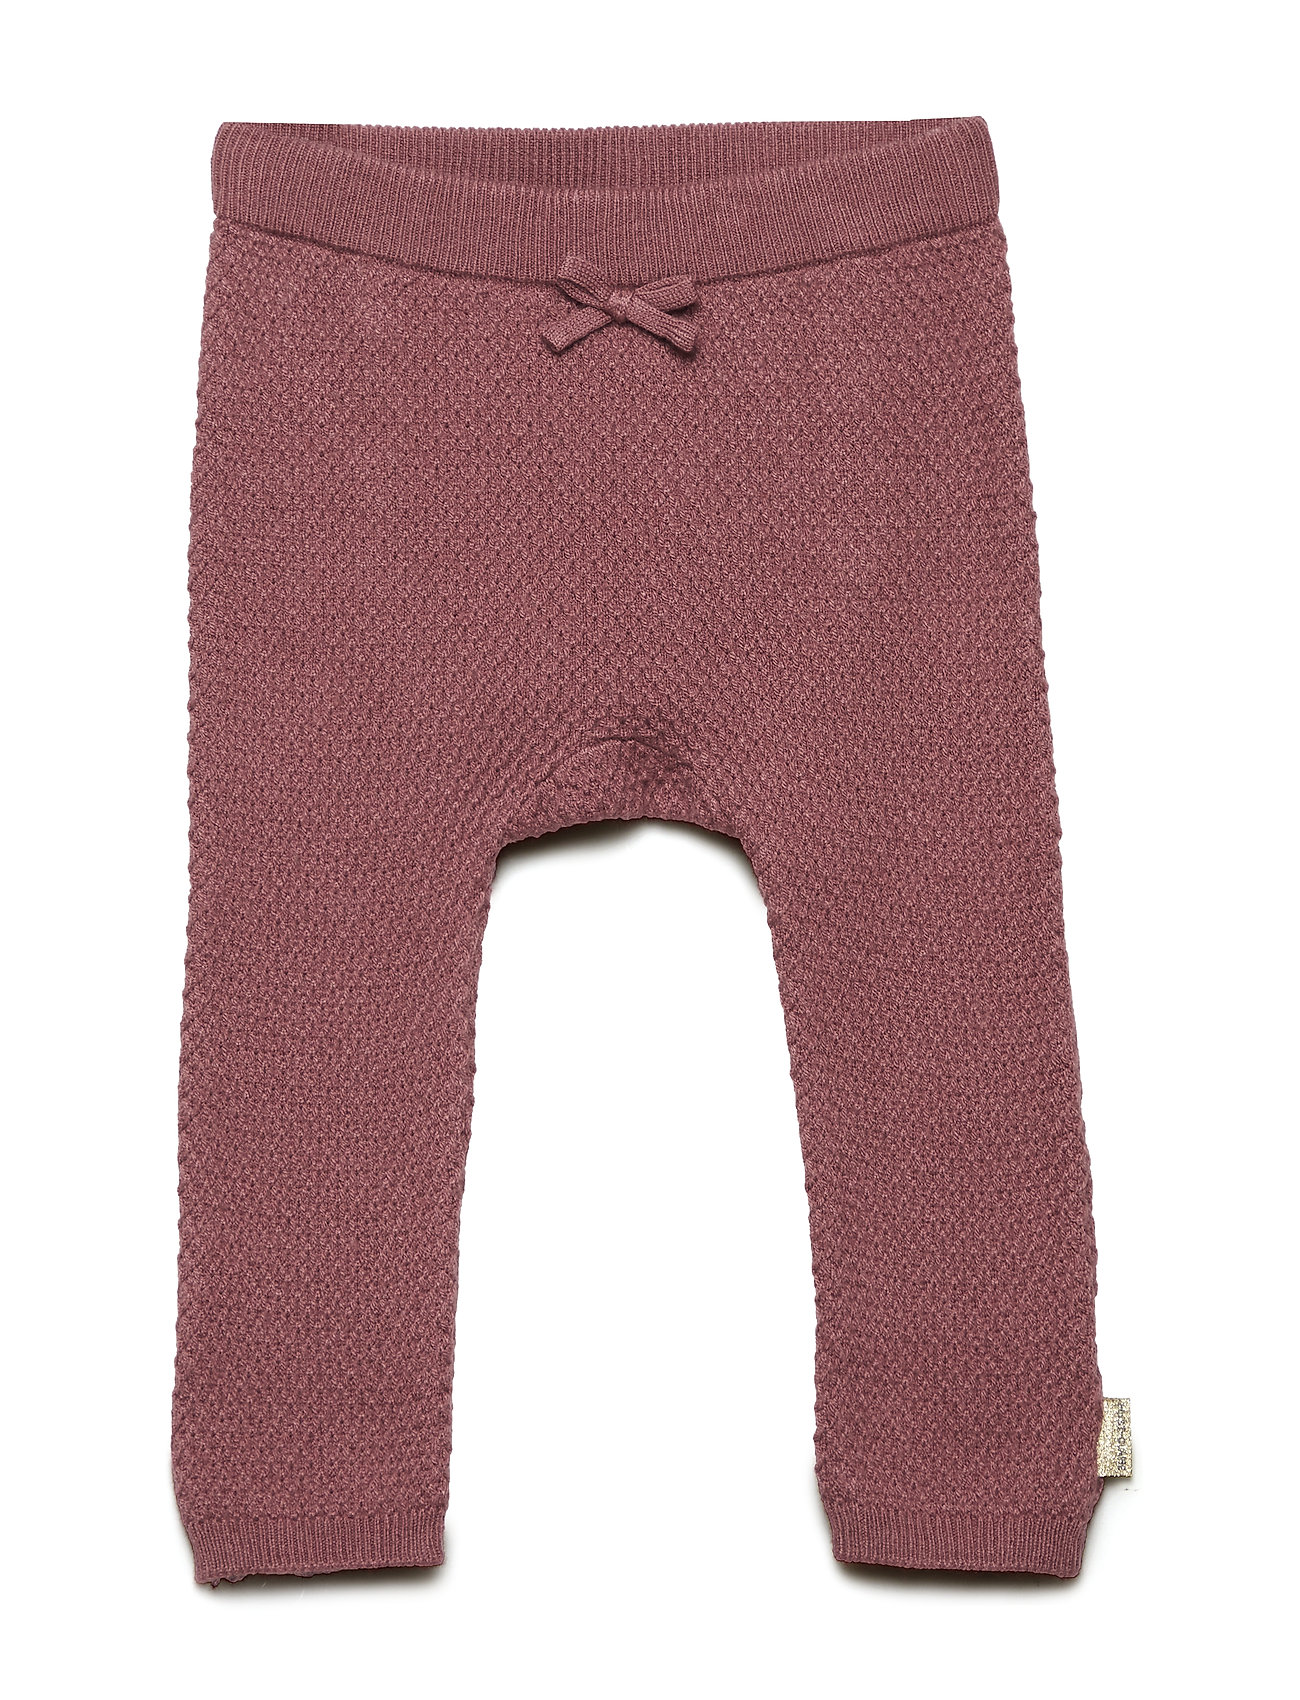 Hust & Claire Titta - Knit trousers